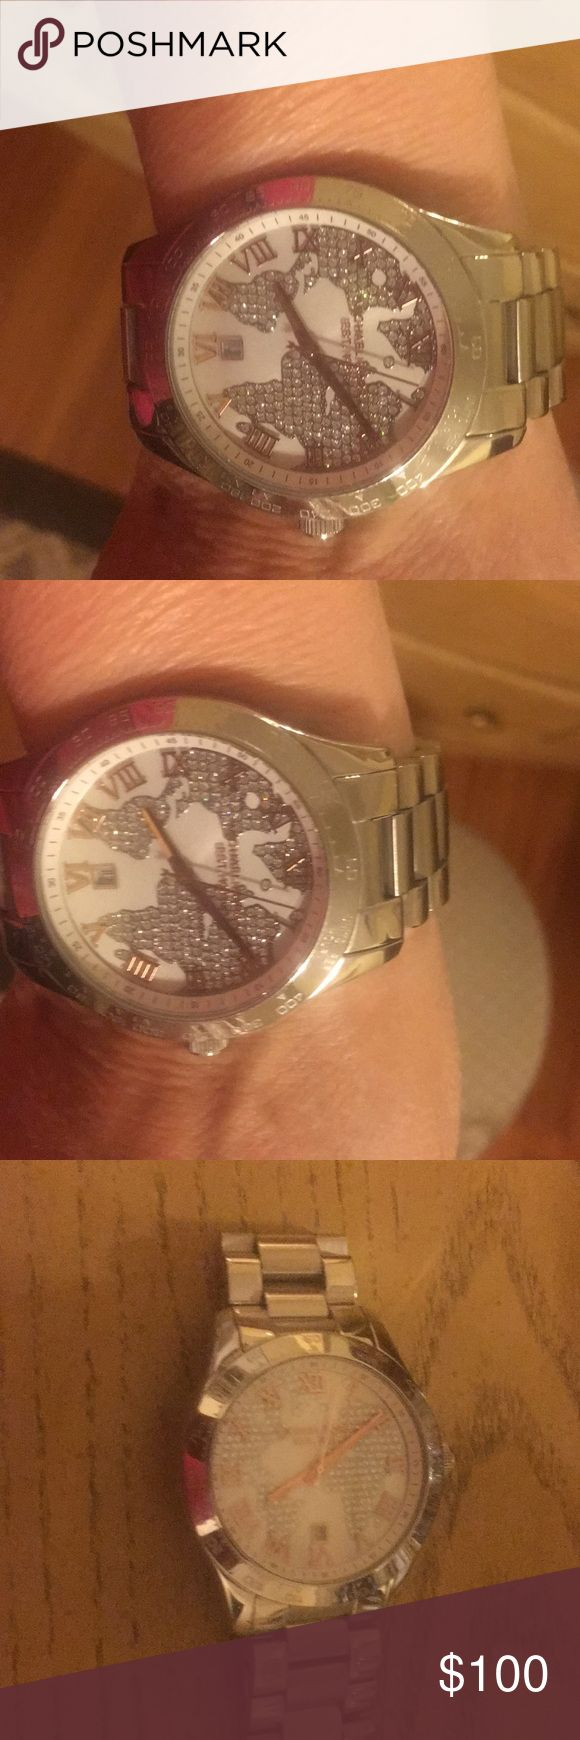 Michael Kors silver watch Stunning silver Michael Kors watch with rose gold. Watch has been used and needs battery. No longer sold in sores. I have received so many compliments. Michael Kors Accessories Watches